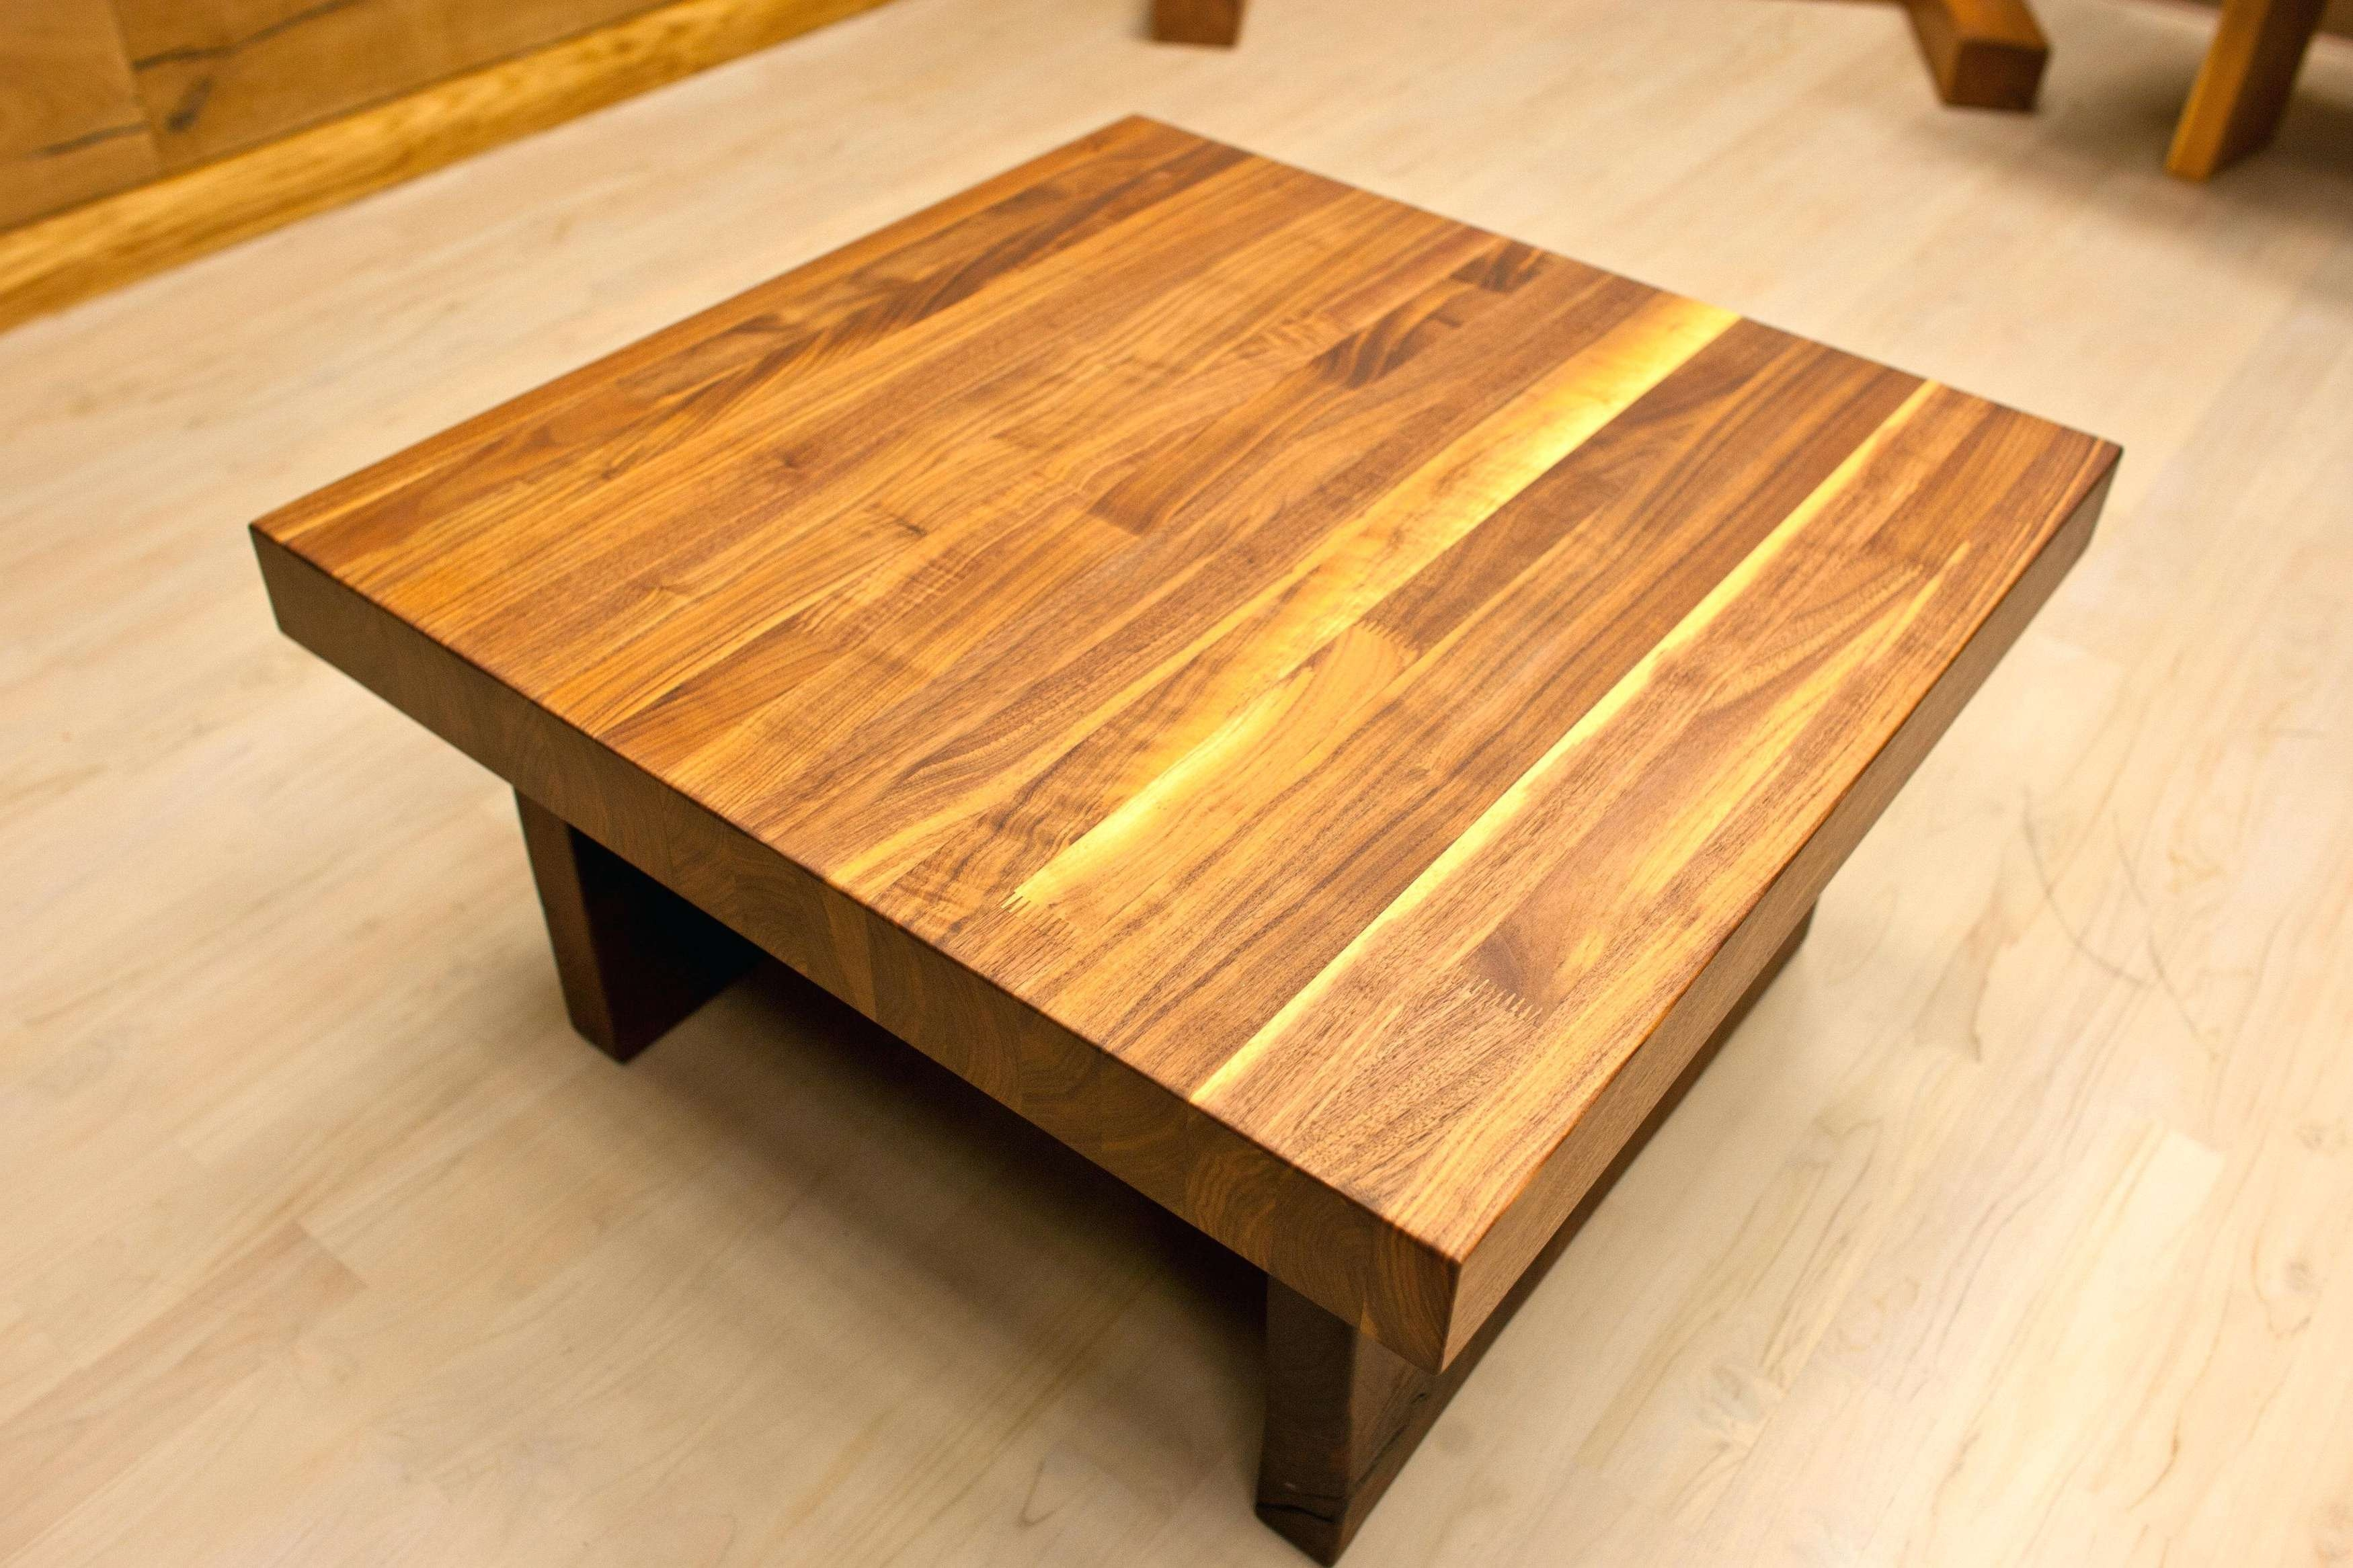 Widely Used Large Low Wood Coffee Tables For Coffee Table Wood Table For Tremendous Large Square Coffee Rustic (View 11 of 20)